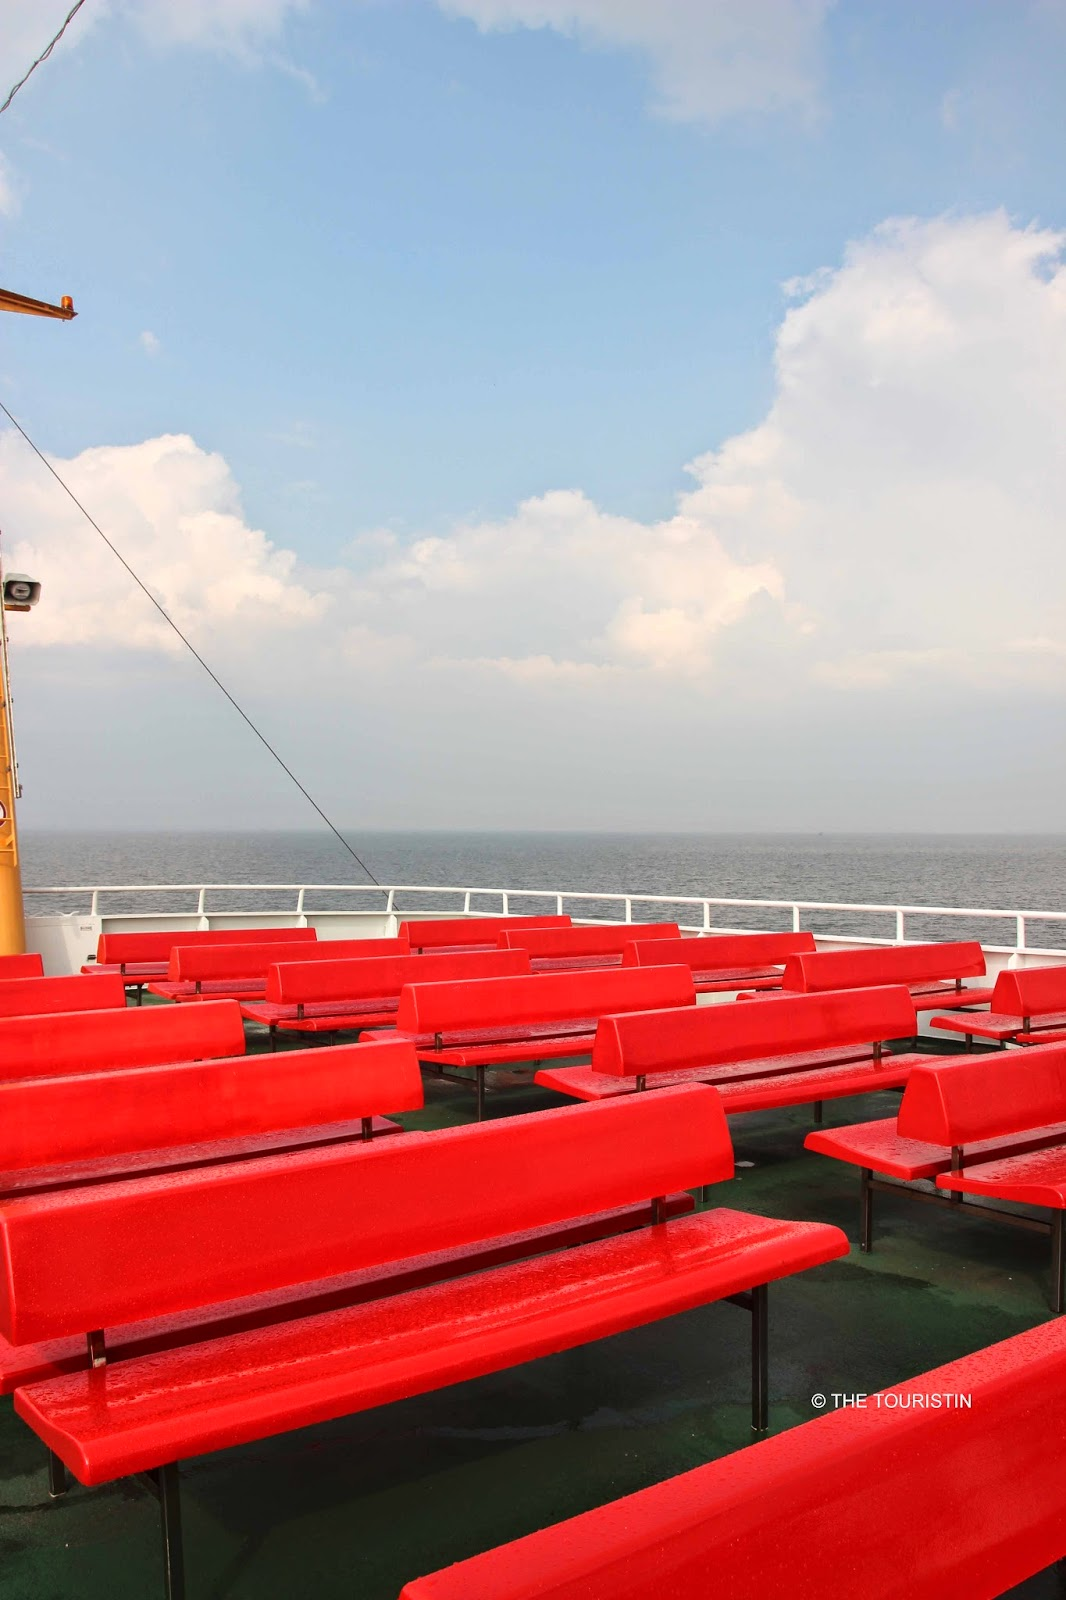 Rows of red benches on the upper green painted deck of a passenger ferry.